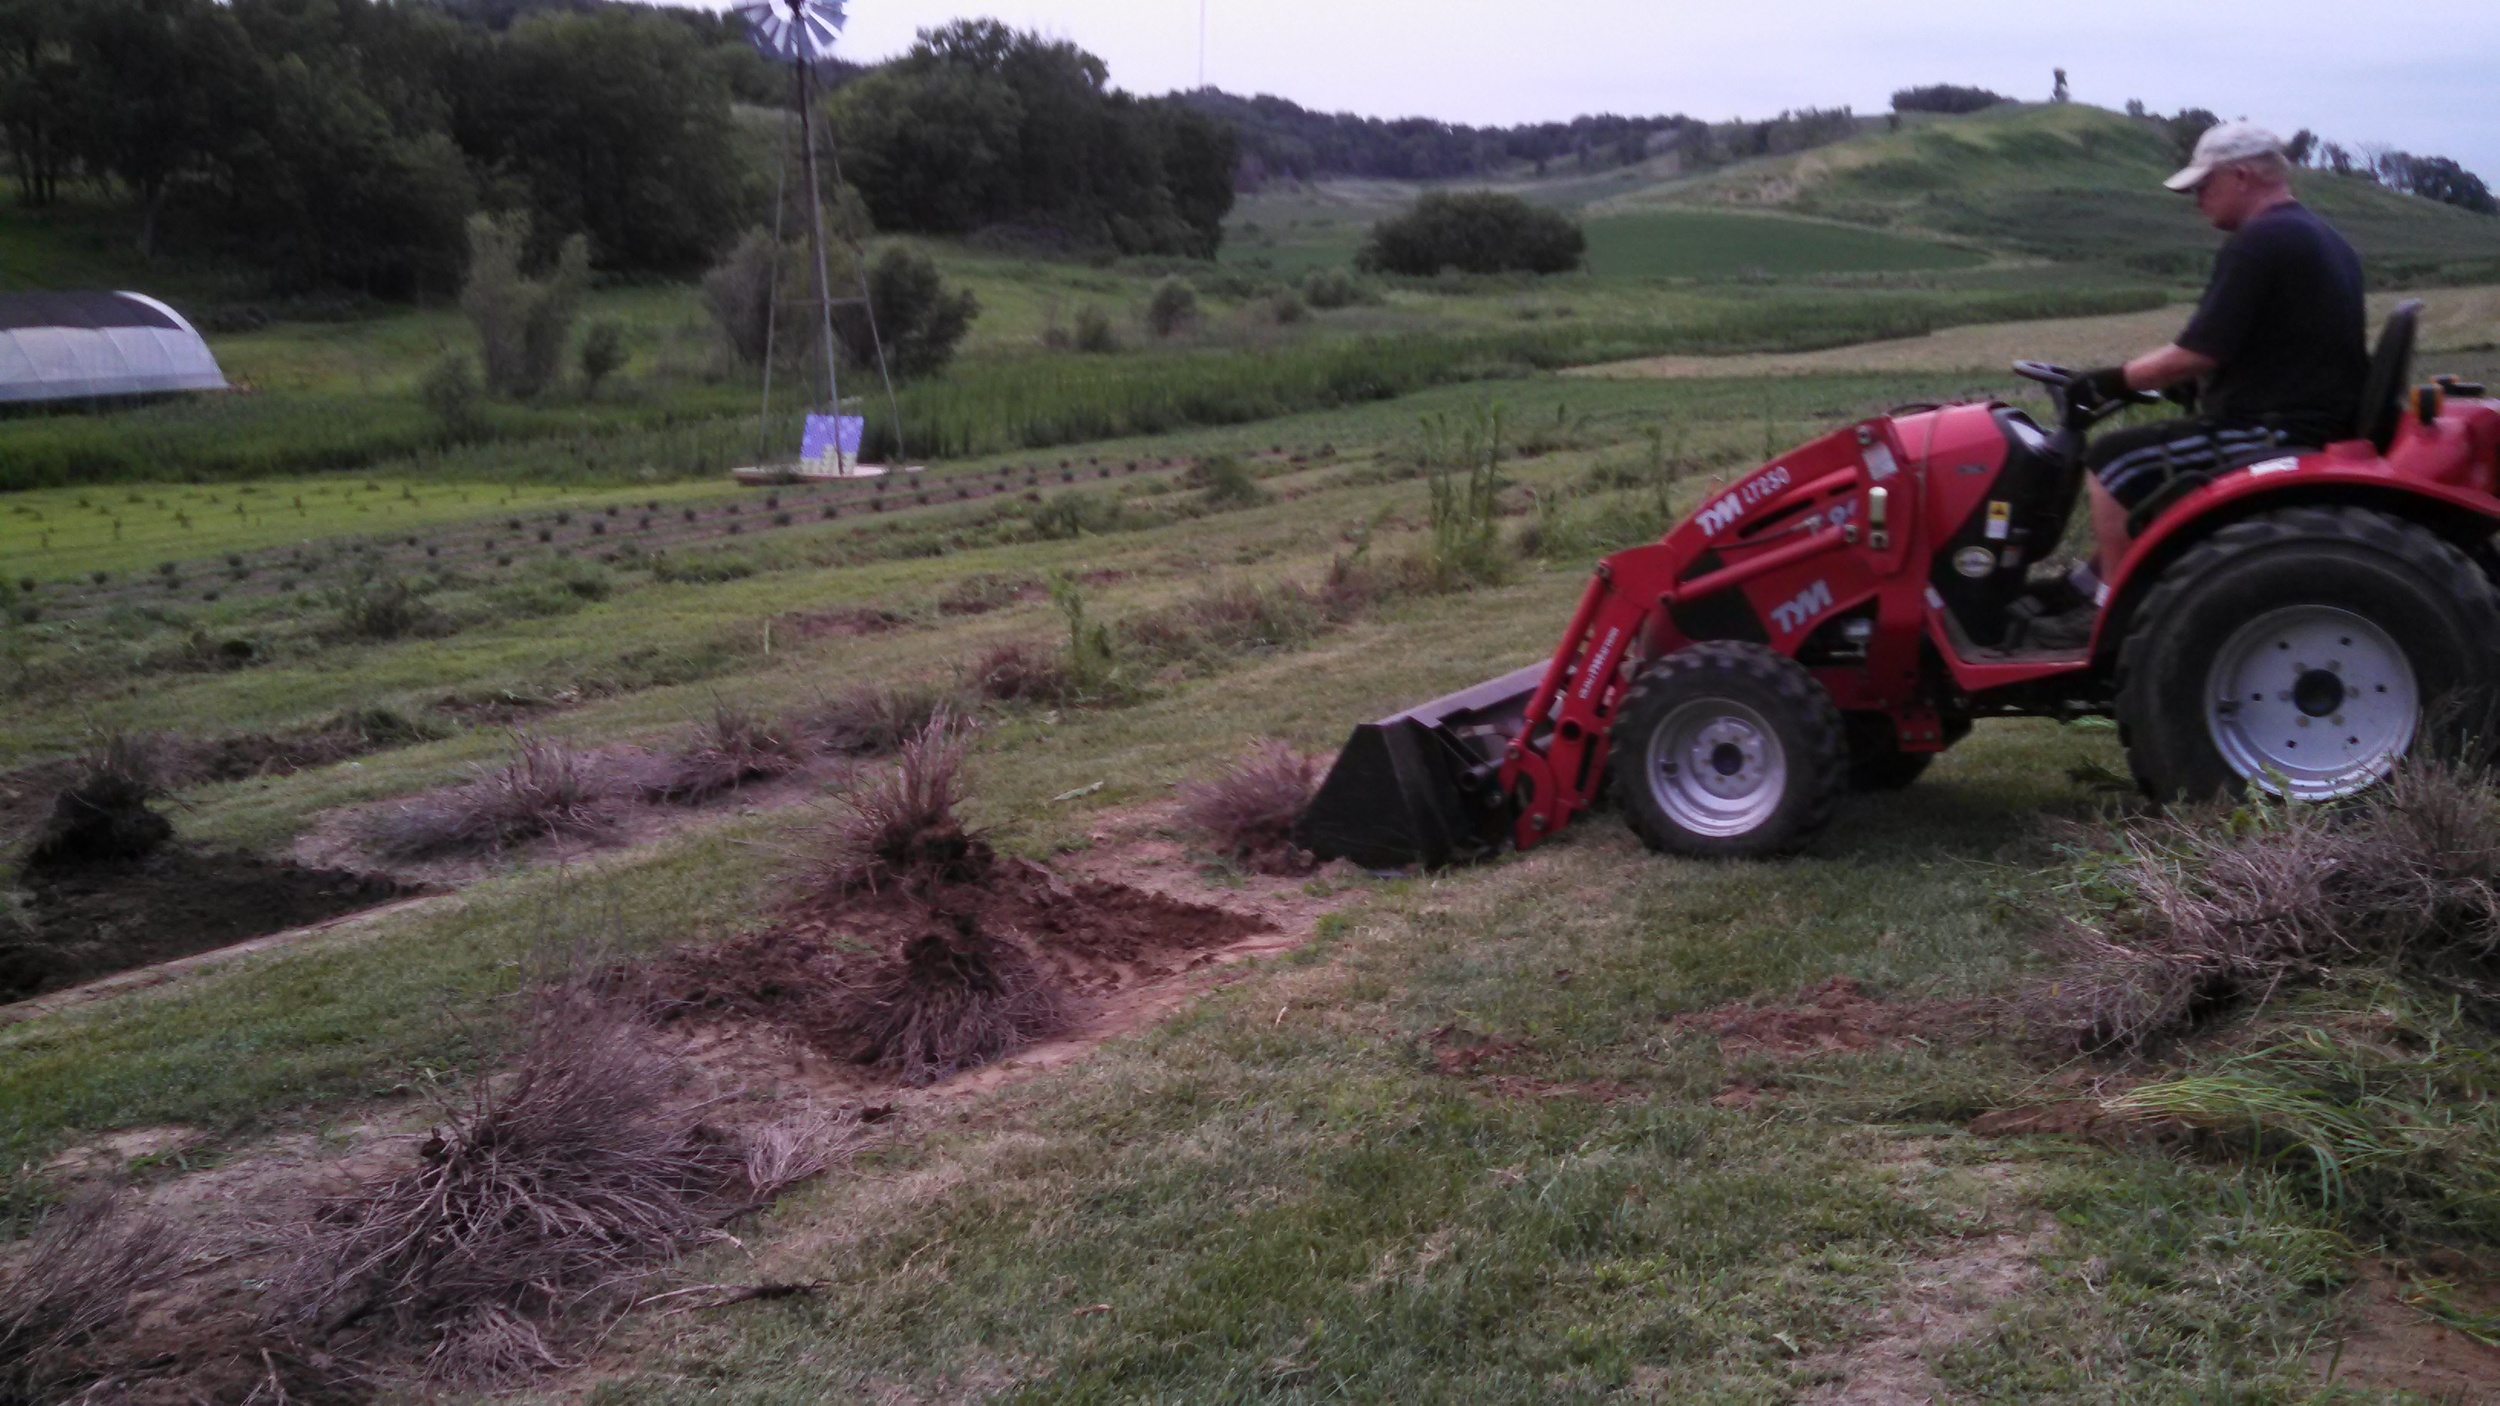 Dead plant removal, July 2014